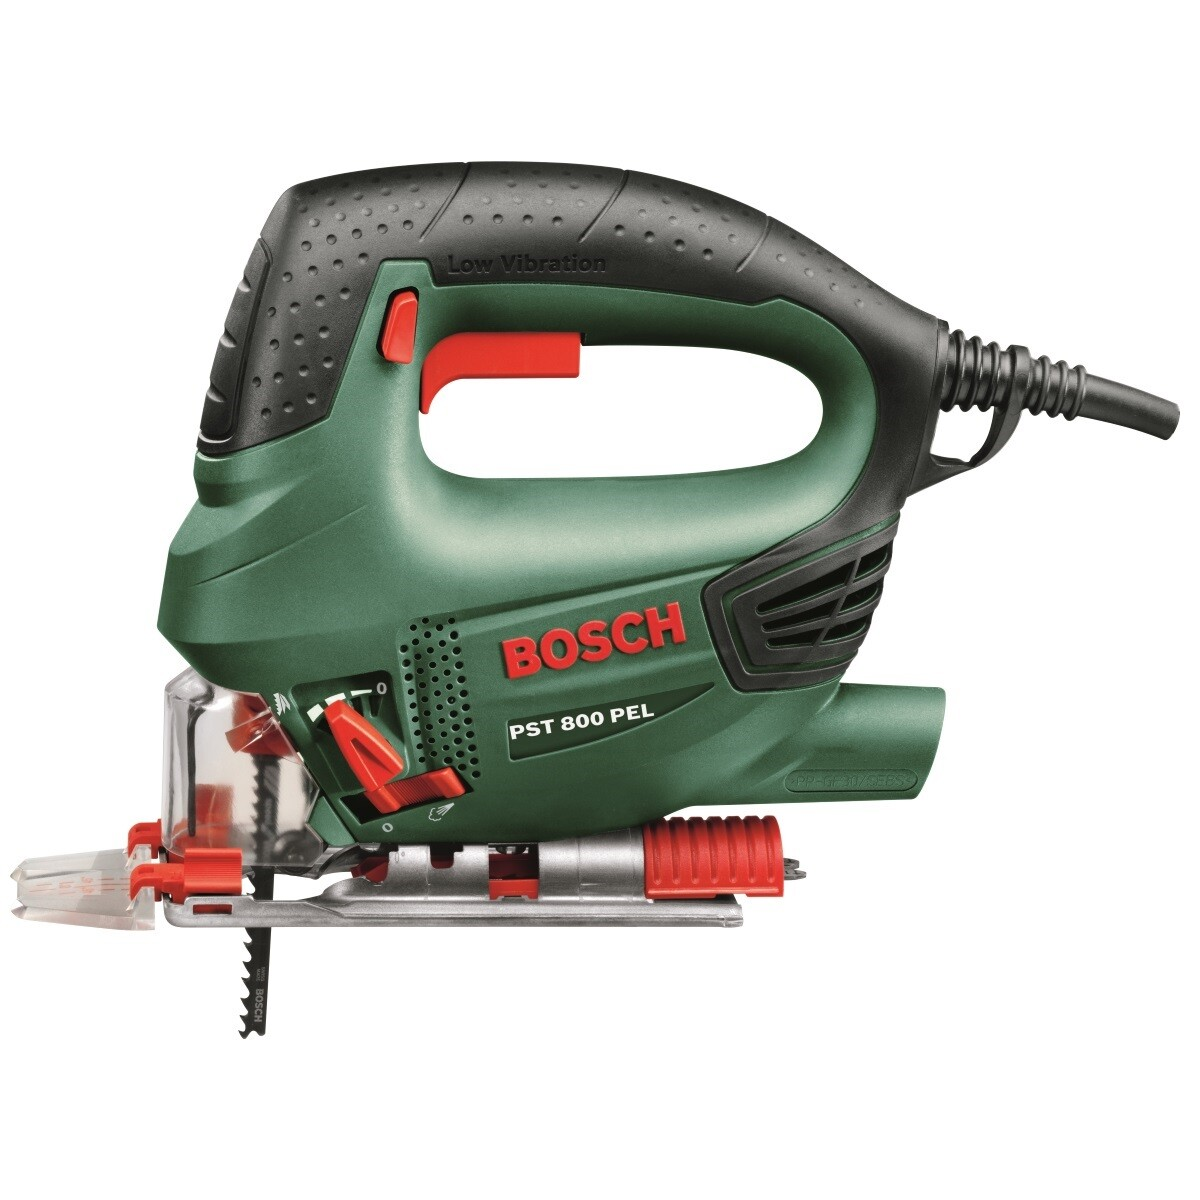 bosch pst800pel 530w compact universal generation jigsaw. Black Bedroom Furniture Sets. Home Design Ideas